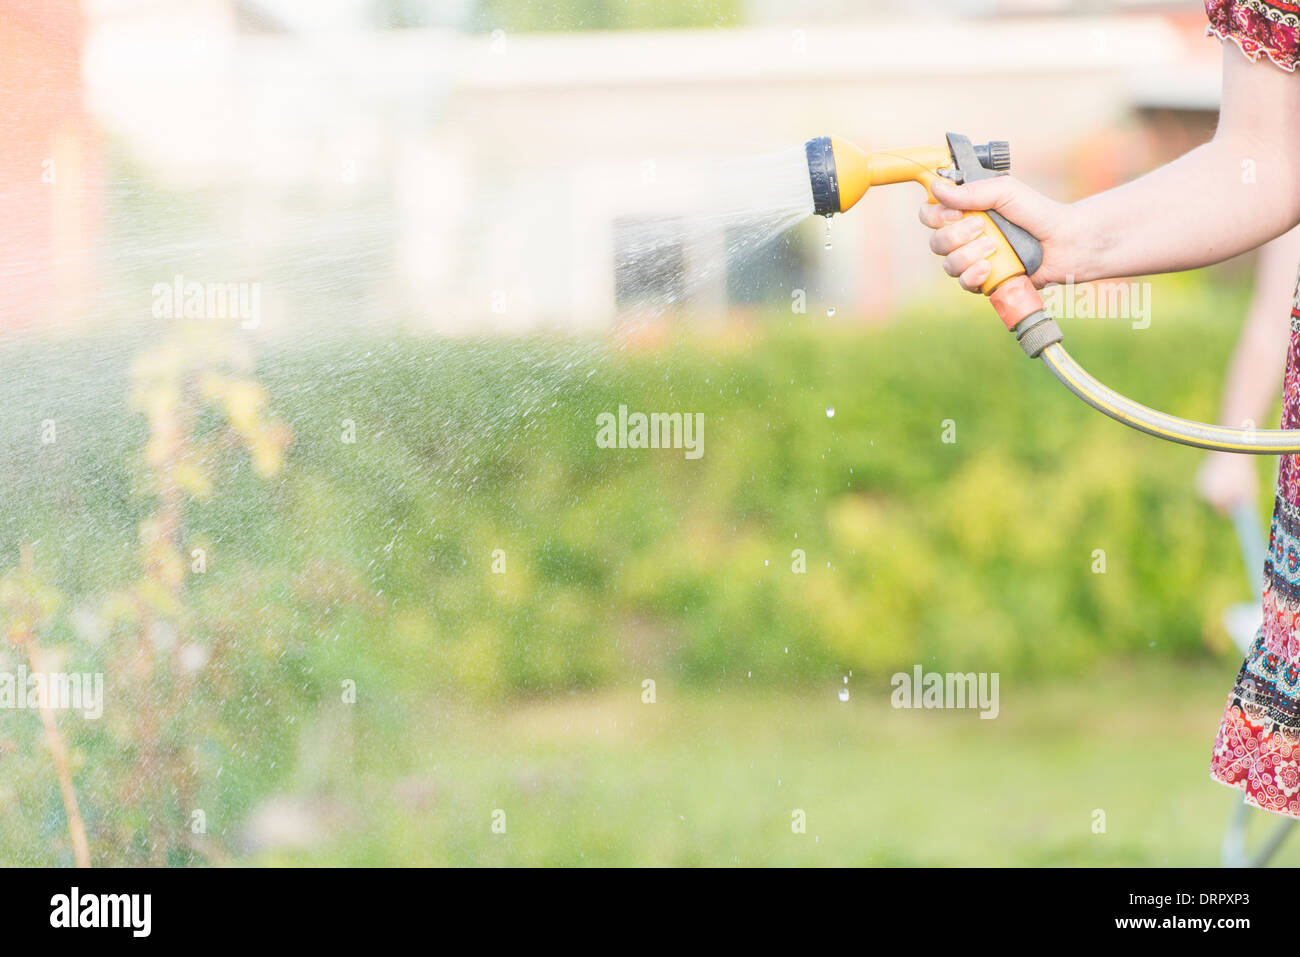 Lifestyle summer scene. Woman watering garden plants with sprinkler. - Stock Image